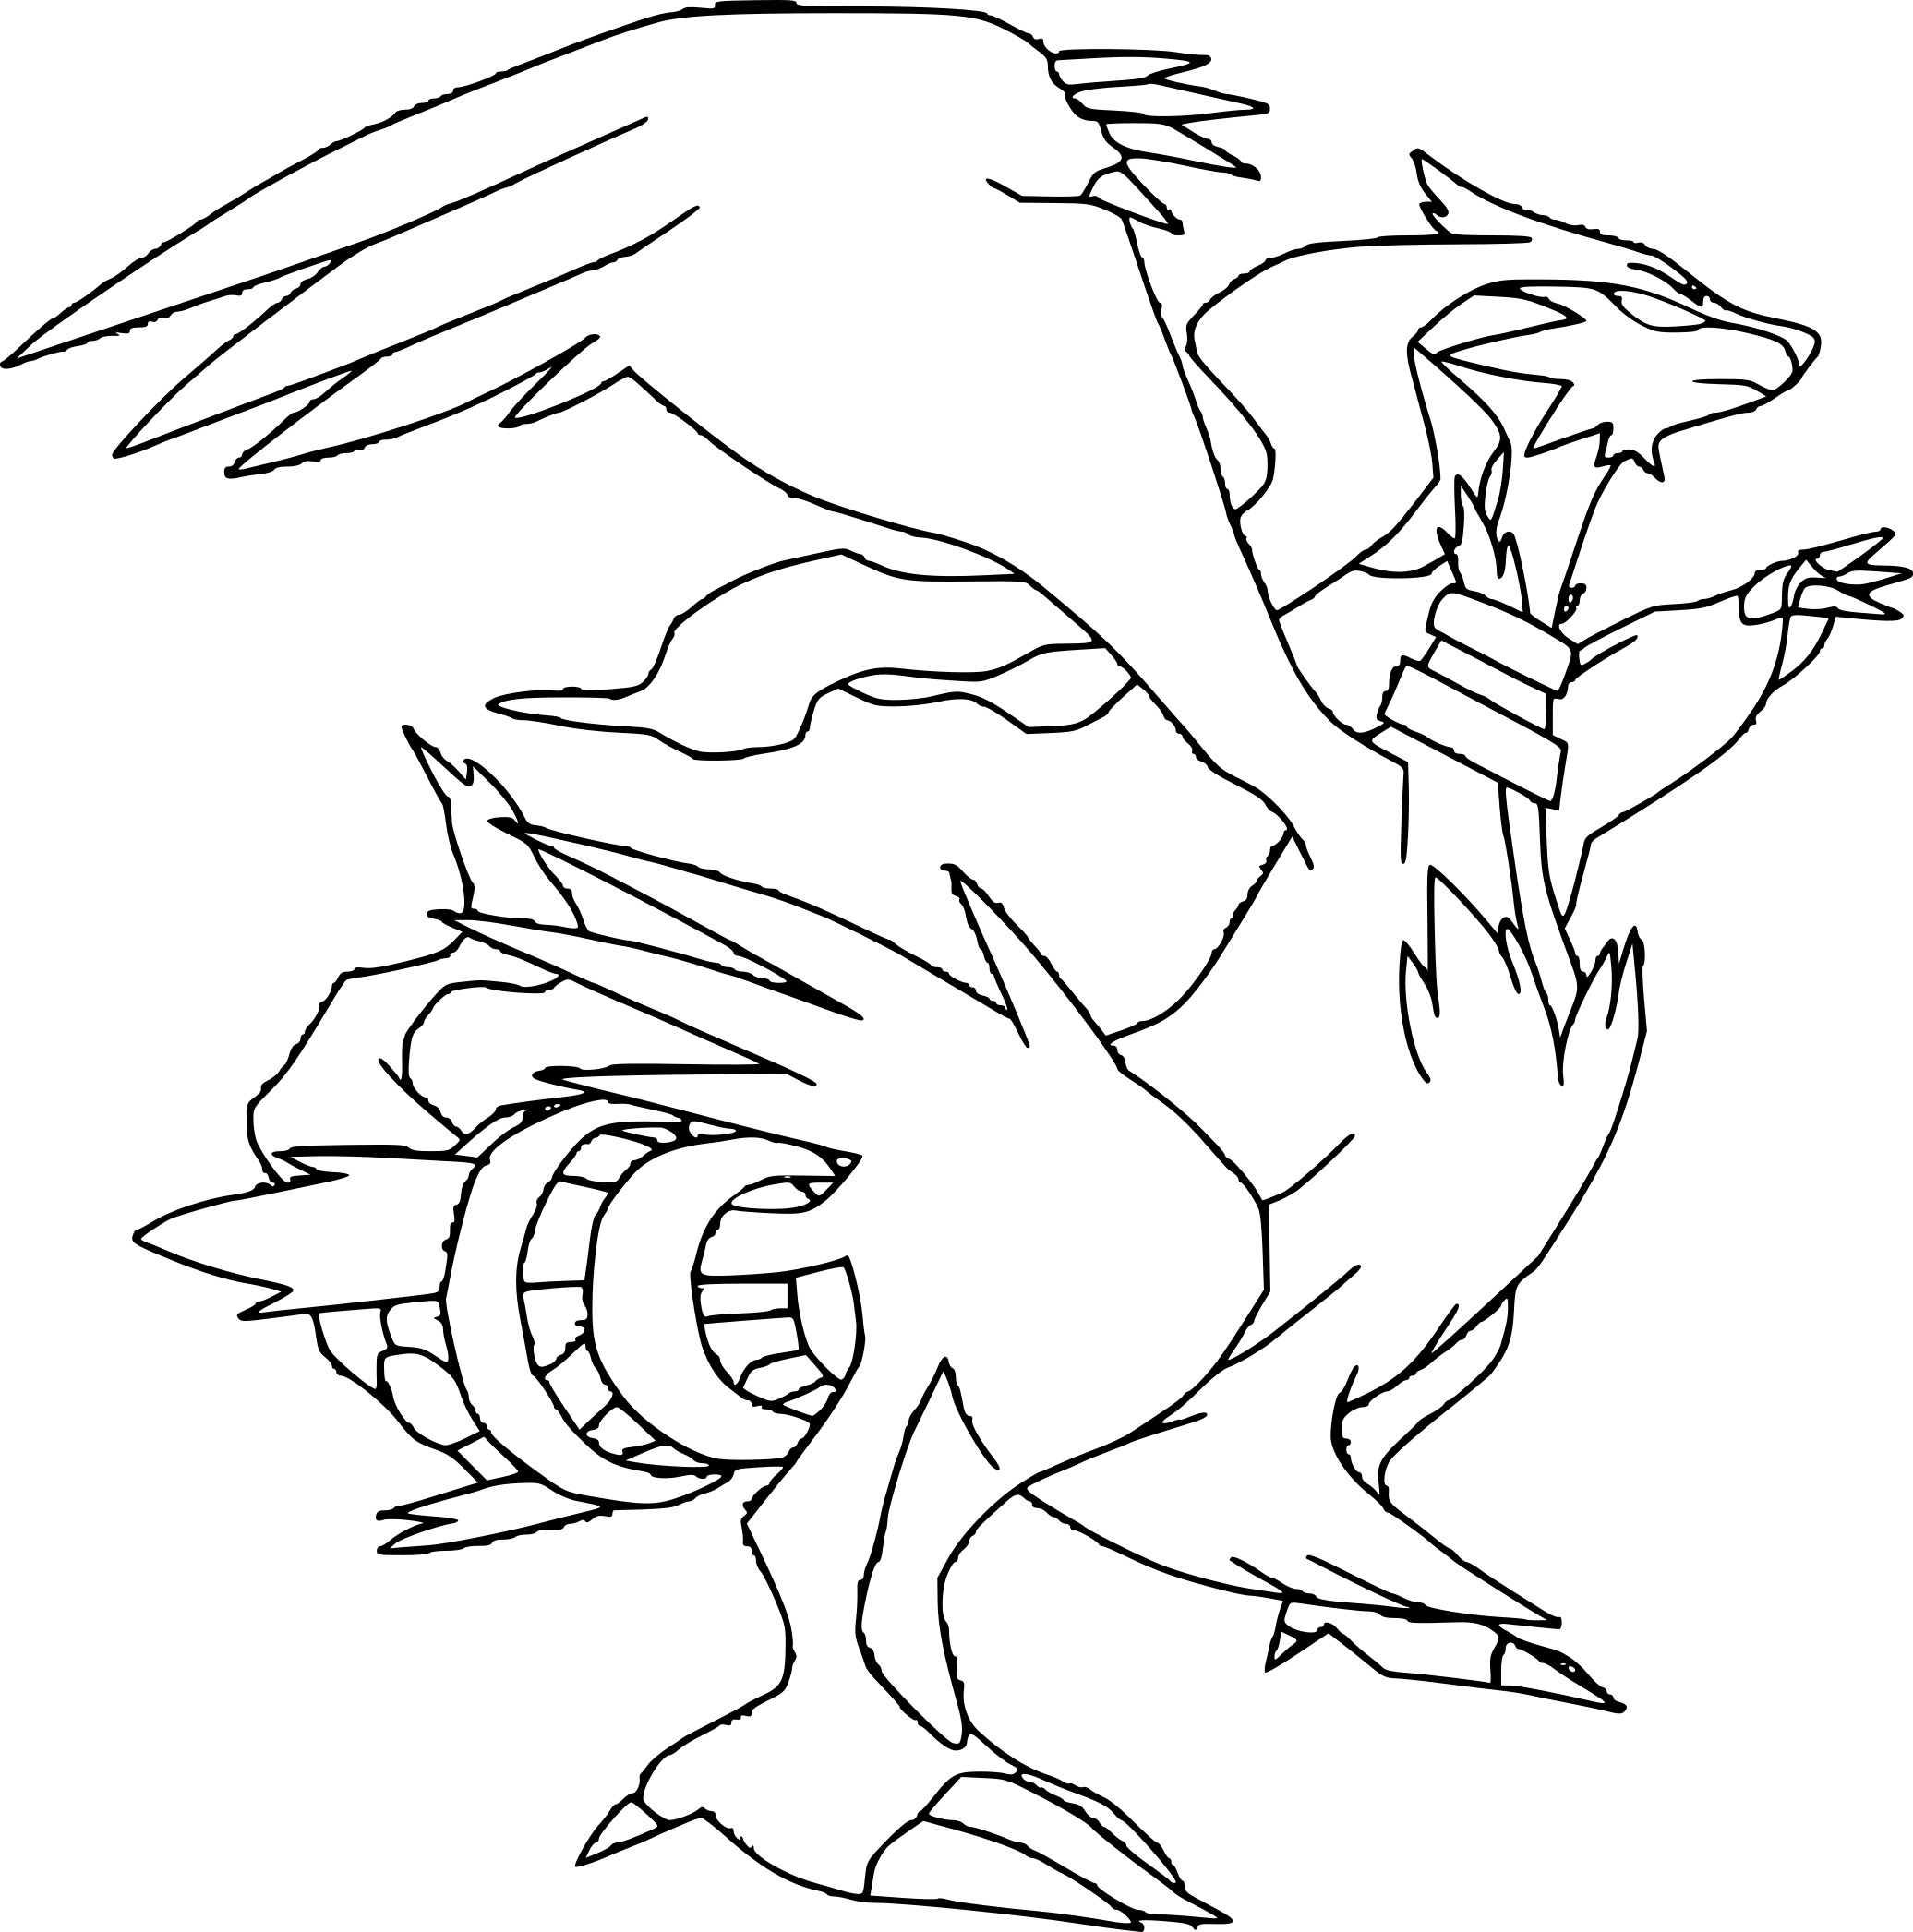 zekrom ex coloring pages | Pokemon Reshiram Coloring Pages Coloring Pages